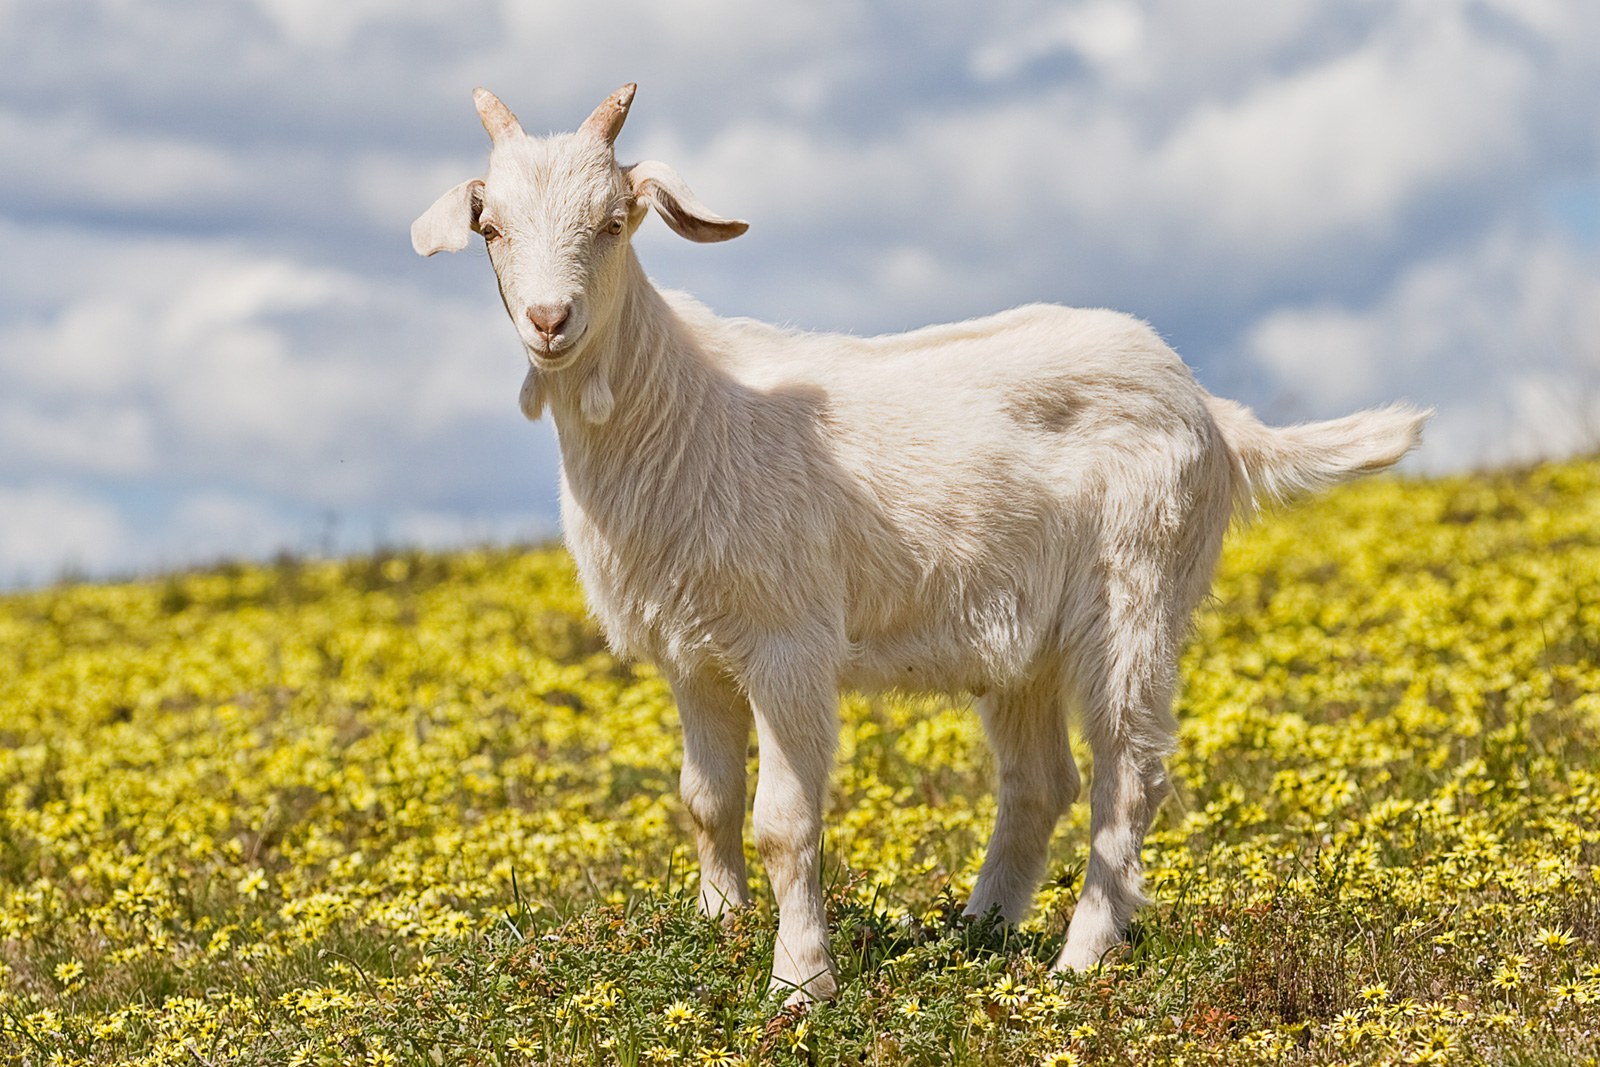 http://upload.wikimedia.org/wikipedia/commons/f/ff/Domestic_goat_kid_in_capeweed.jpg